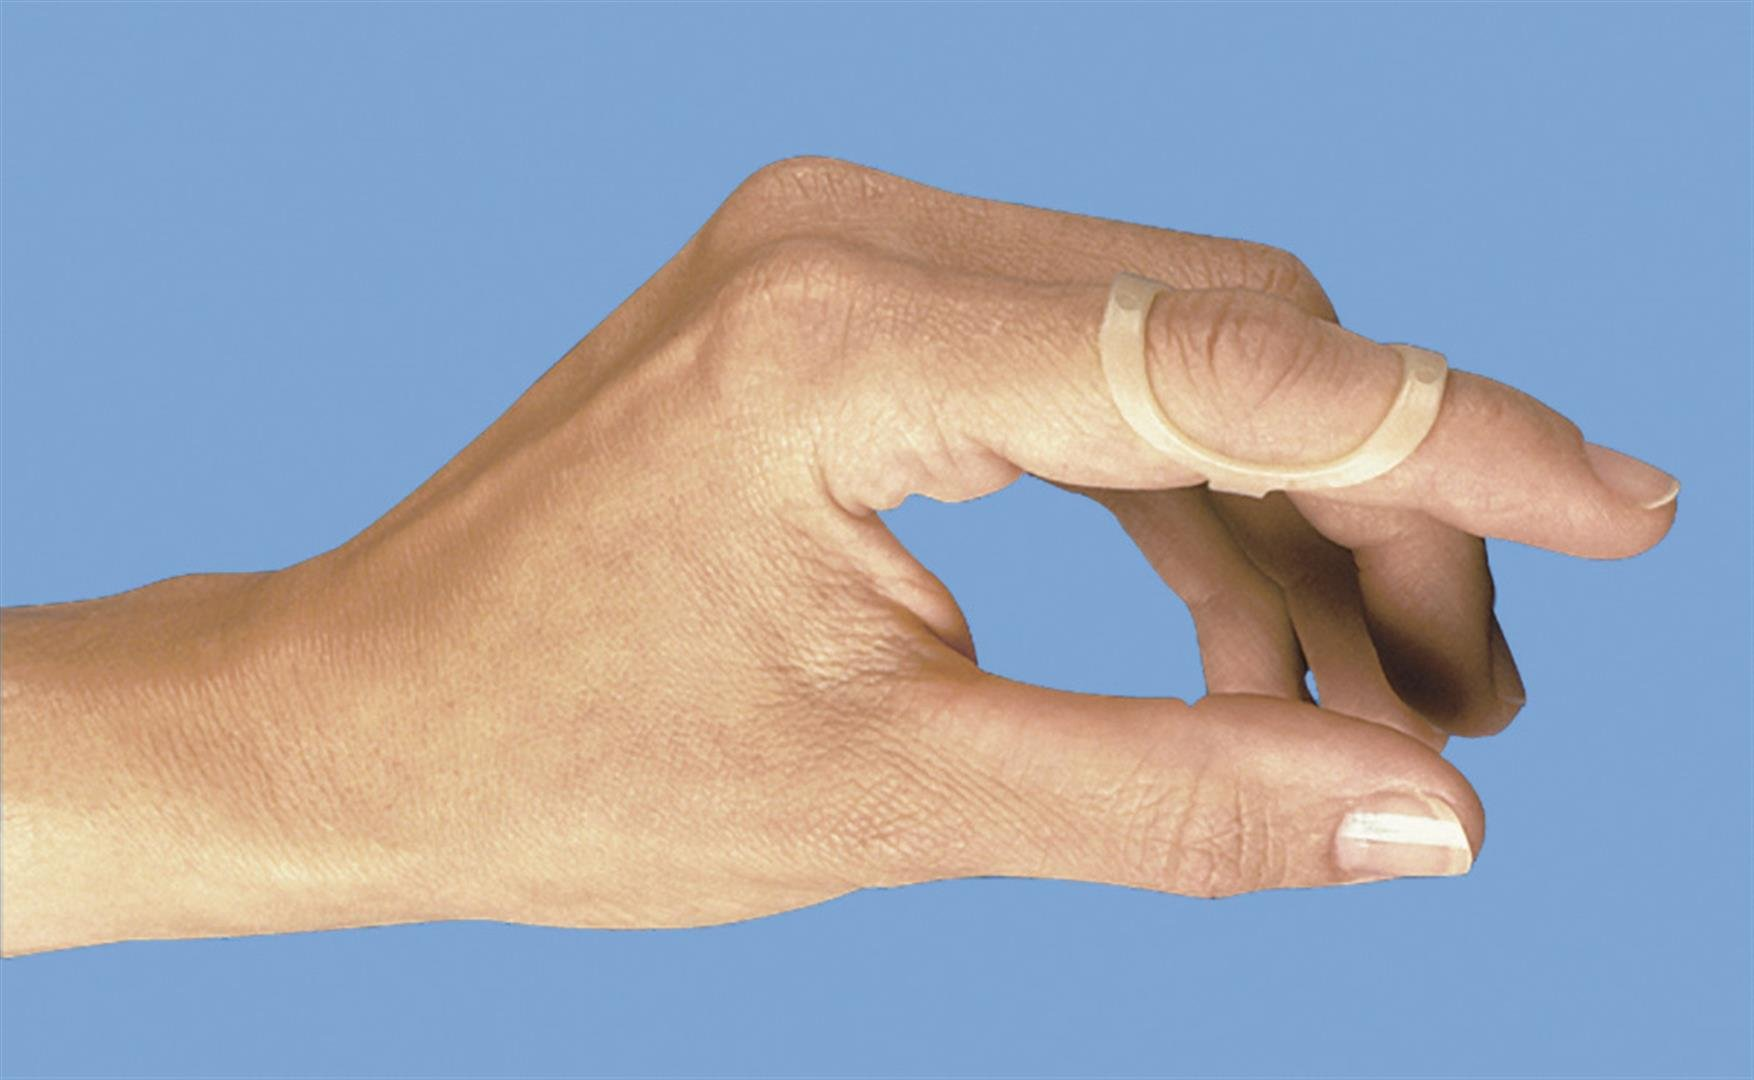 Oval 8 Finger Splints - Size 14 (Pack of 5) by Patterson Medical (Image #4)